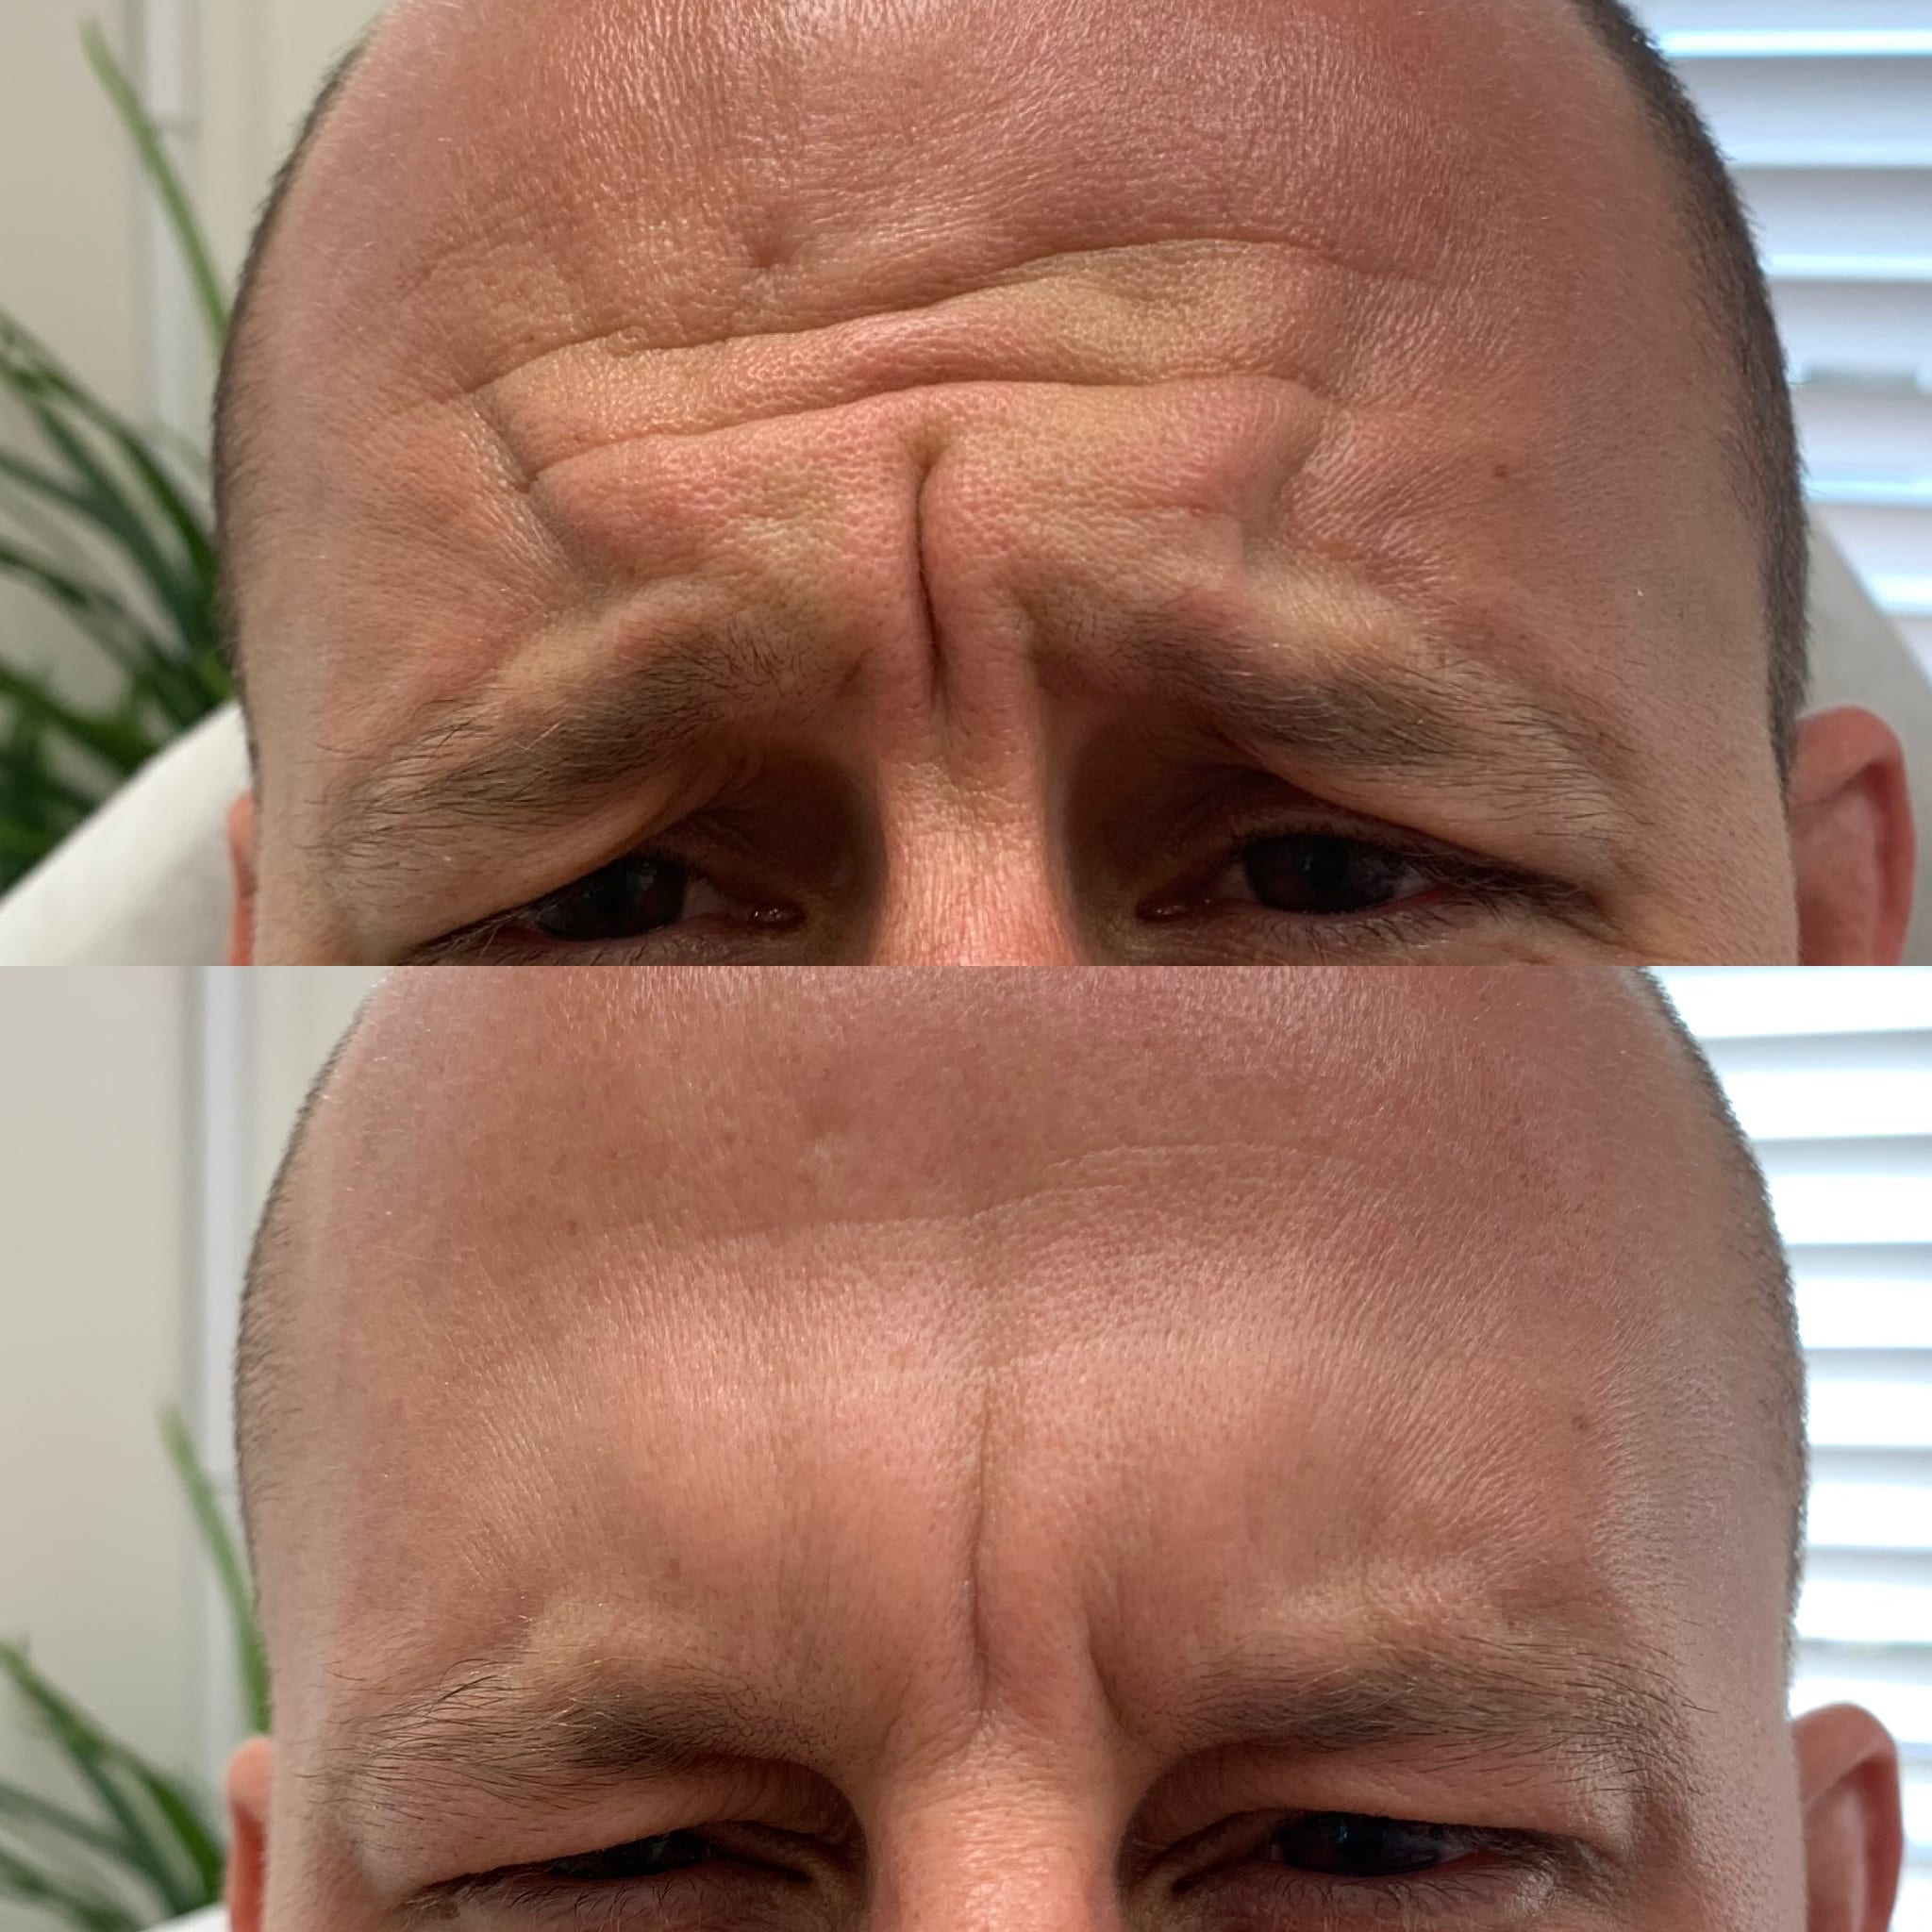 36 y/o Caucasian F 2 weeks after receiving 30 units of botox to soften his frown lines.